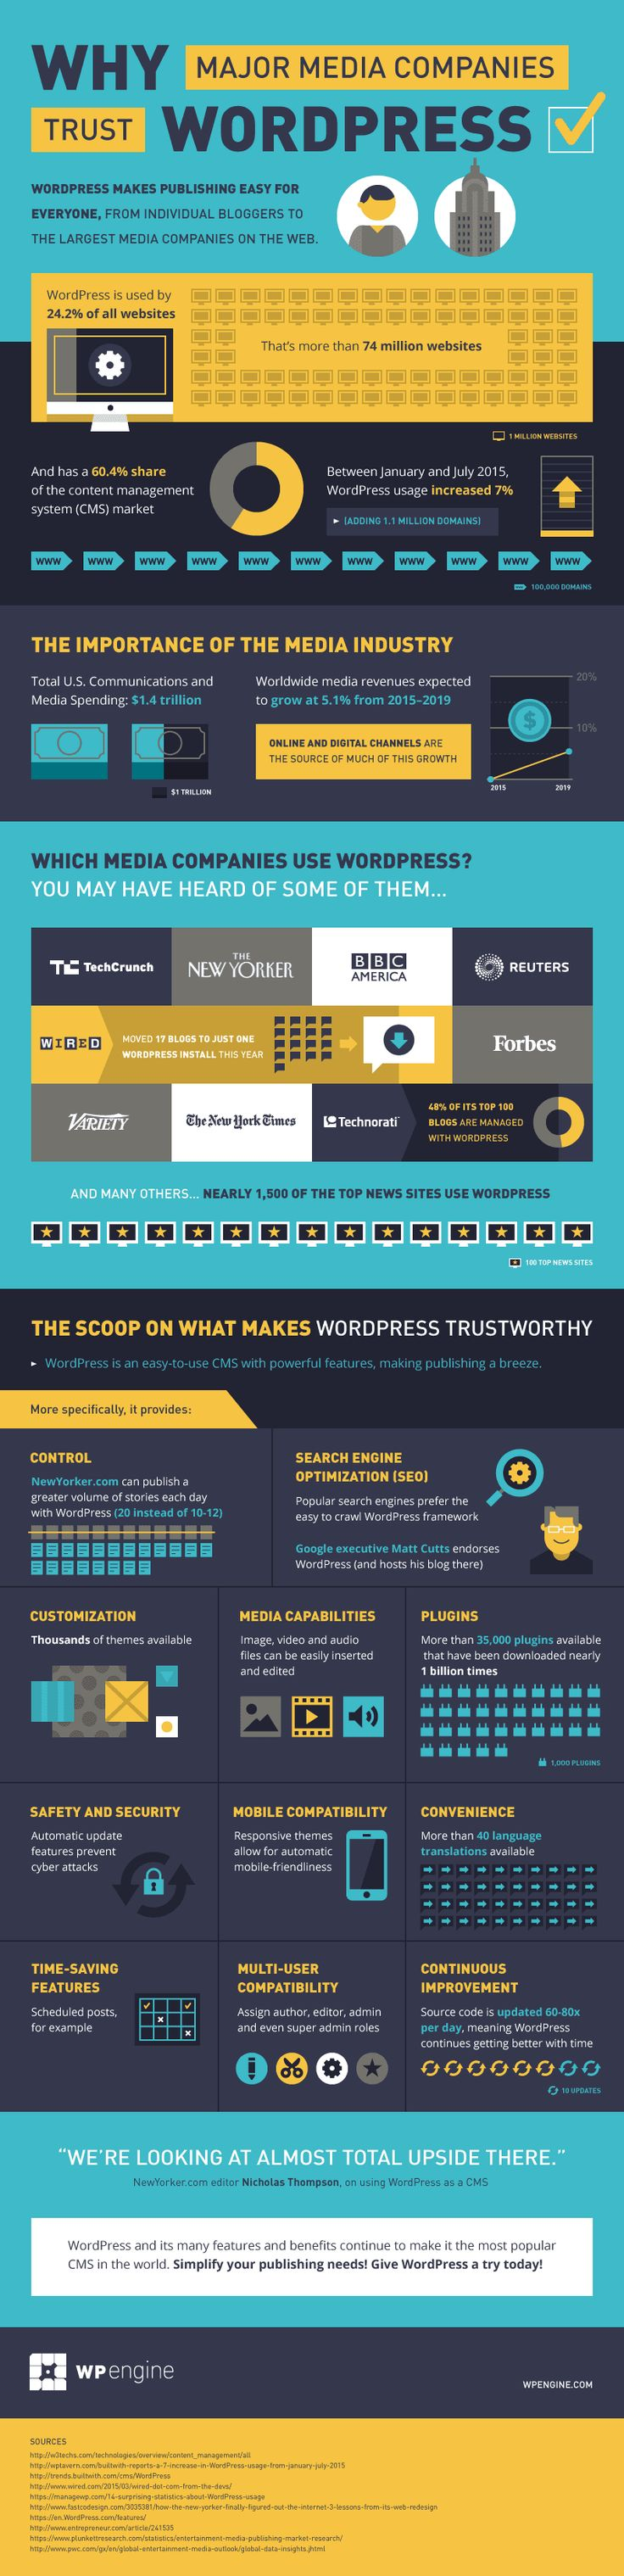 Why Major Media Companies Trust WordPress - #Infographic